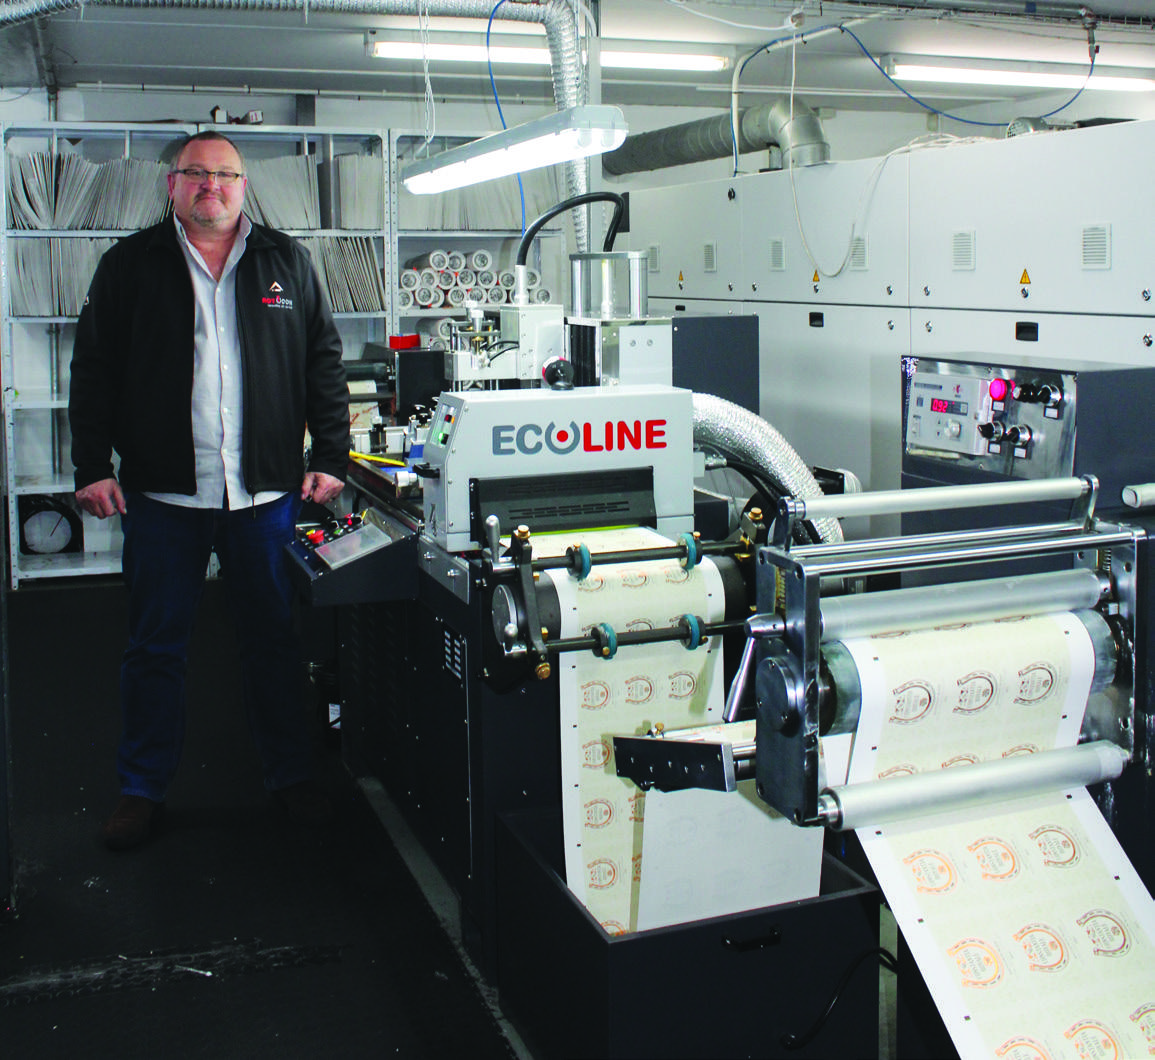 Win-Pak's print manager Basil Forbes is impressed with ROTOCON's ECOLINE flatbed silkscreen press.